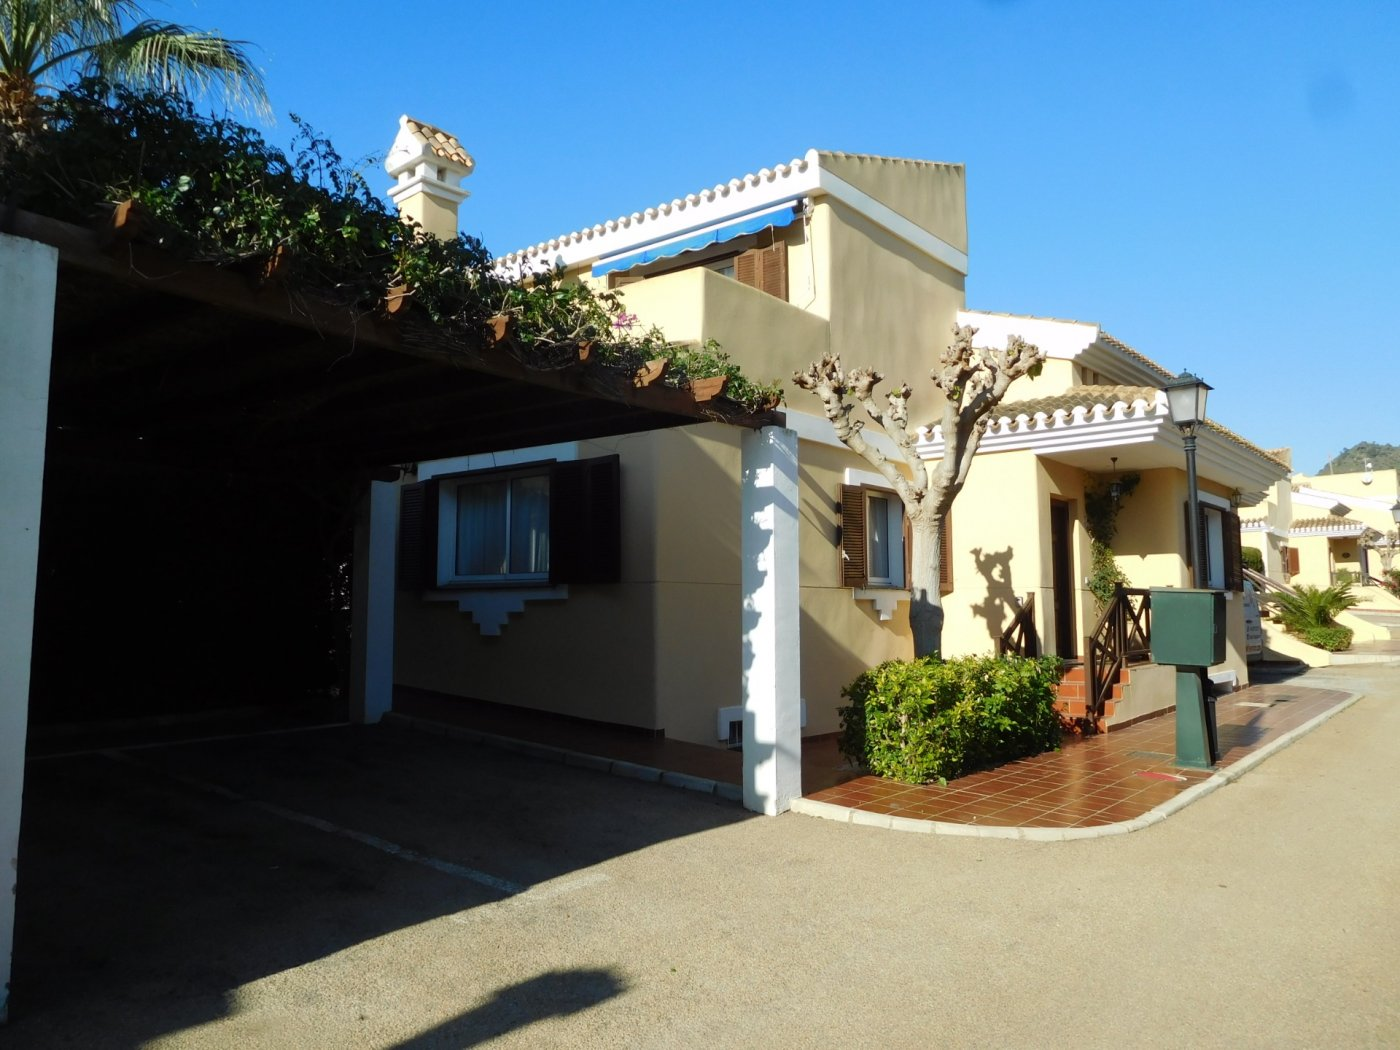 Gallery Image 31 of Casa For rent in Los Naranjos, La Manga Club With Pool